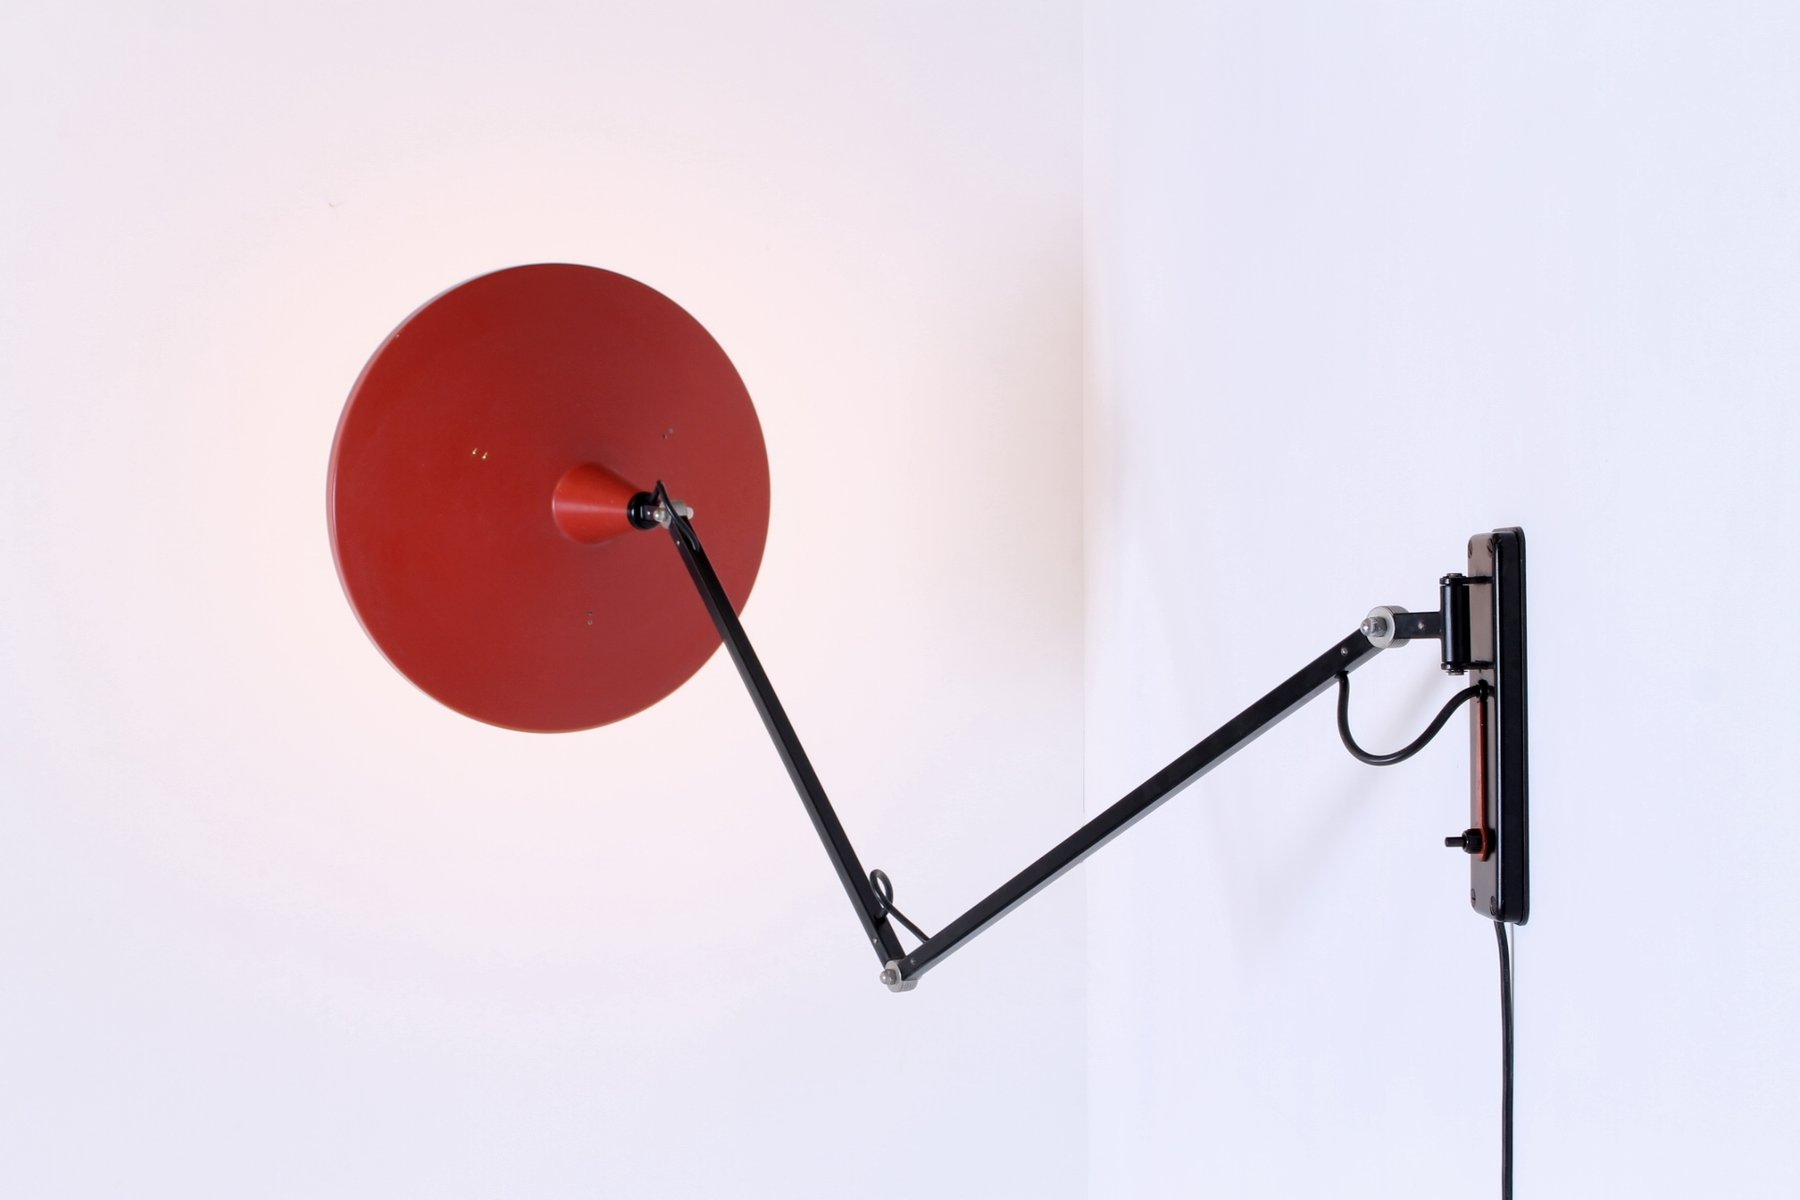 Vintage Panama Articulated Black & Red Wall Light by Wim Rietveld for Gispen for sale at Pamono